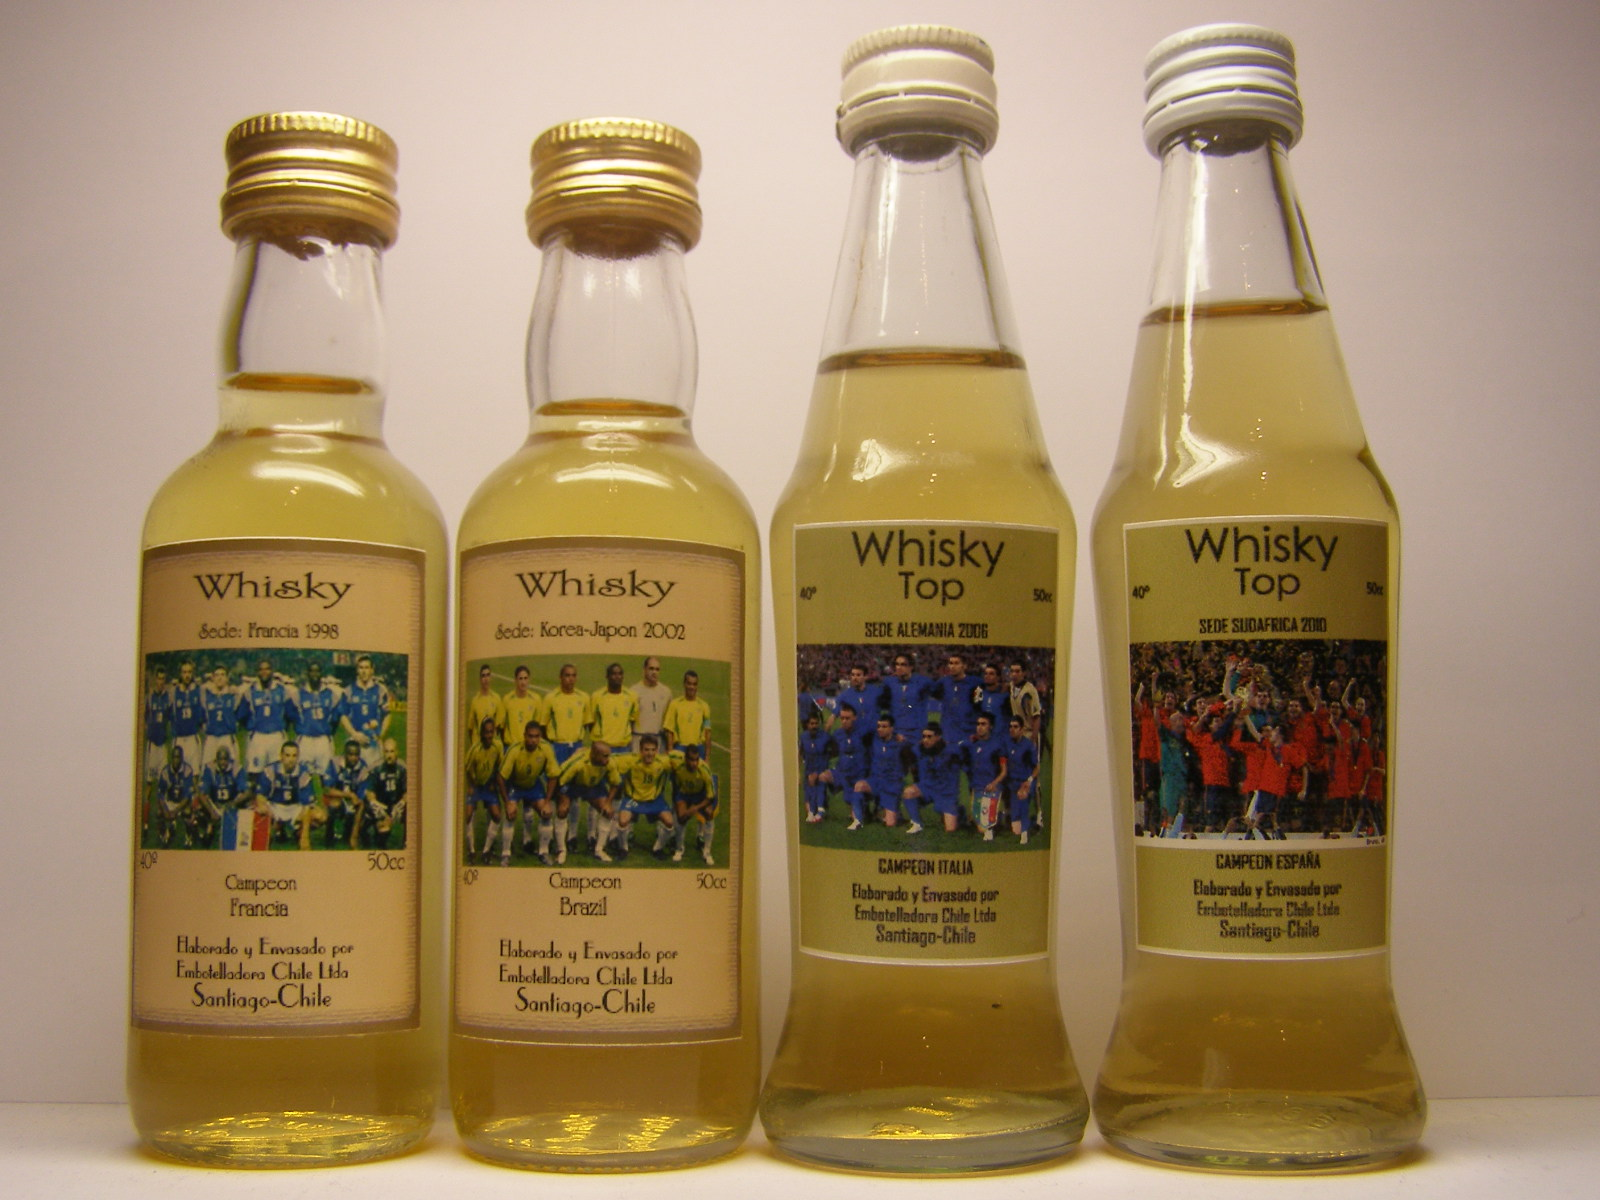 Campeon 1998 , 2002 , 2006 , 2010 Whisky